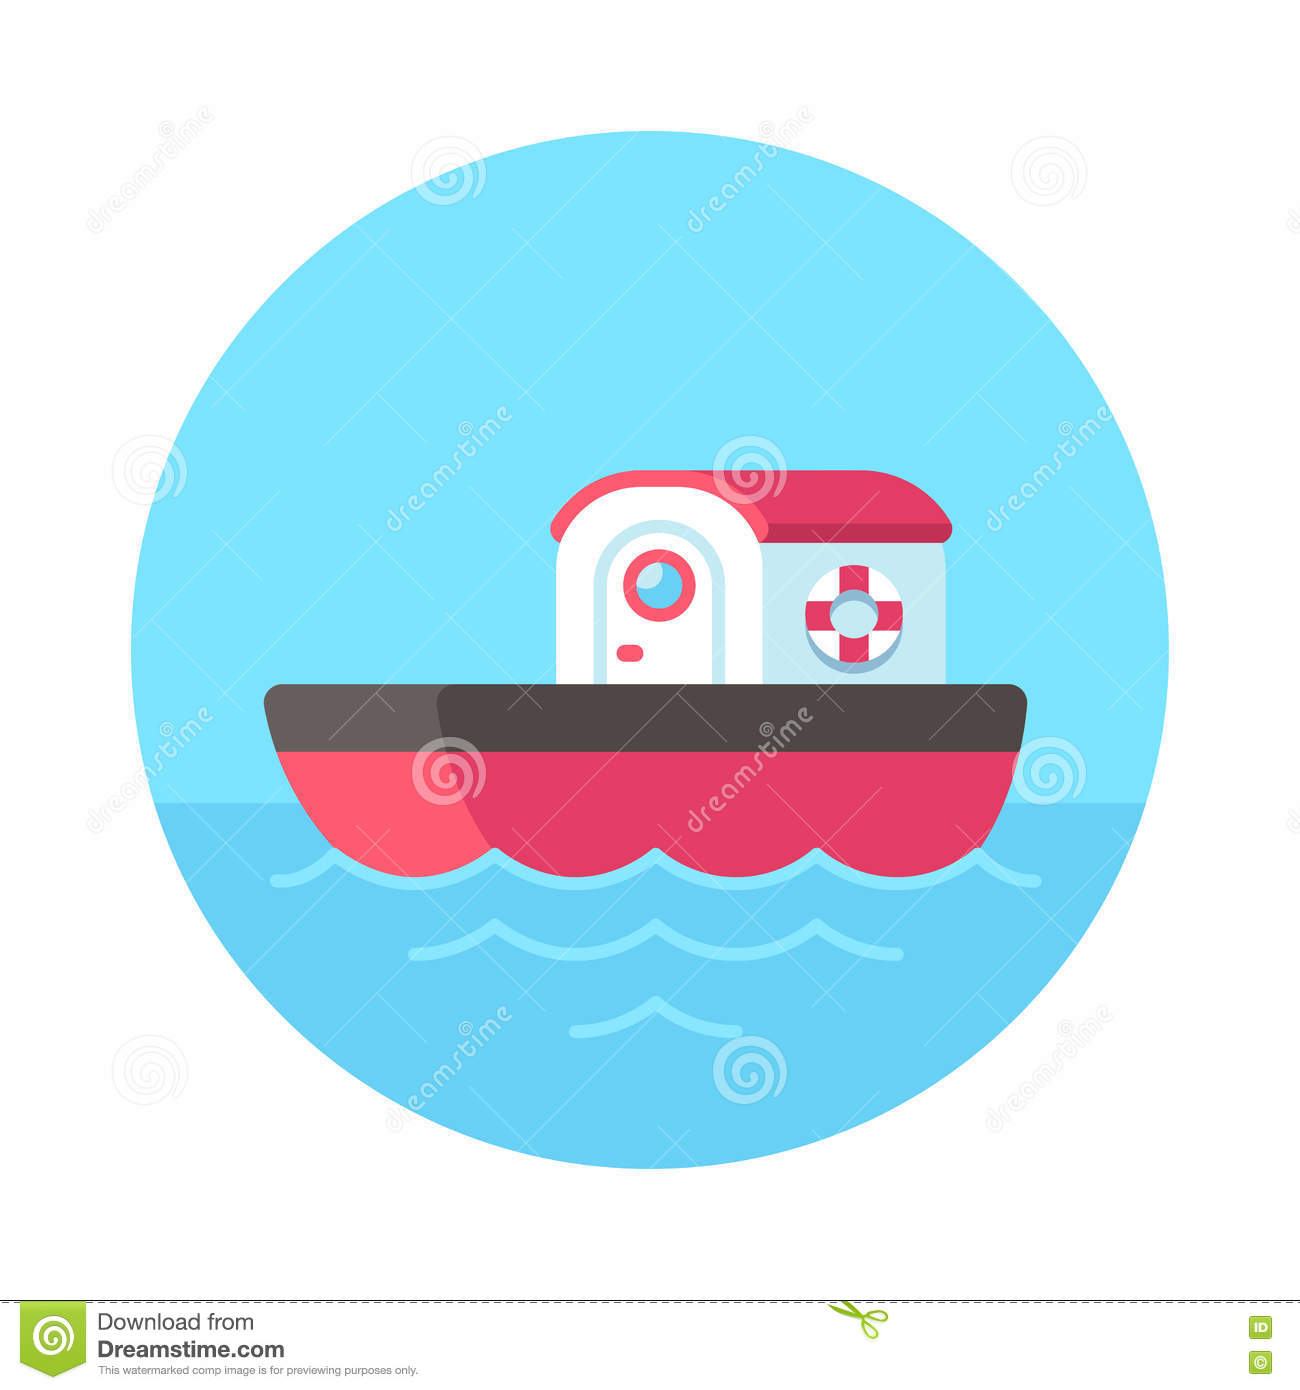 Cartoon Tugboat Illustration Stock Vector - Image: 77739696